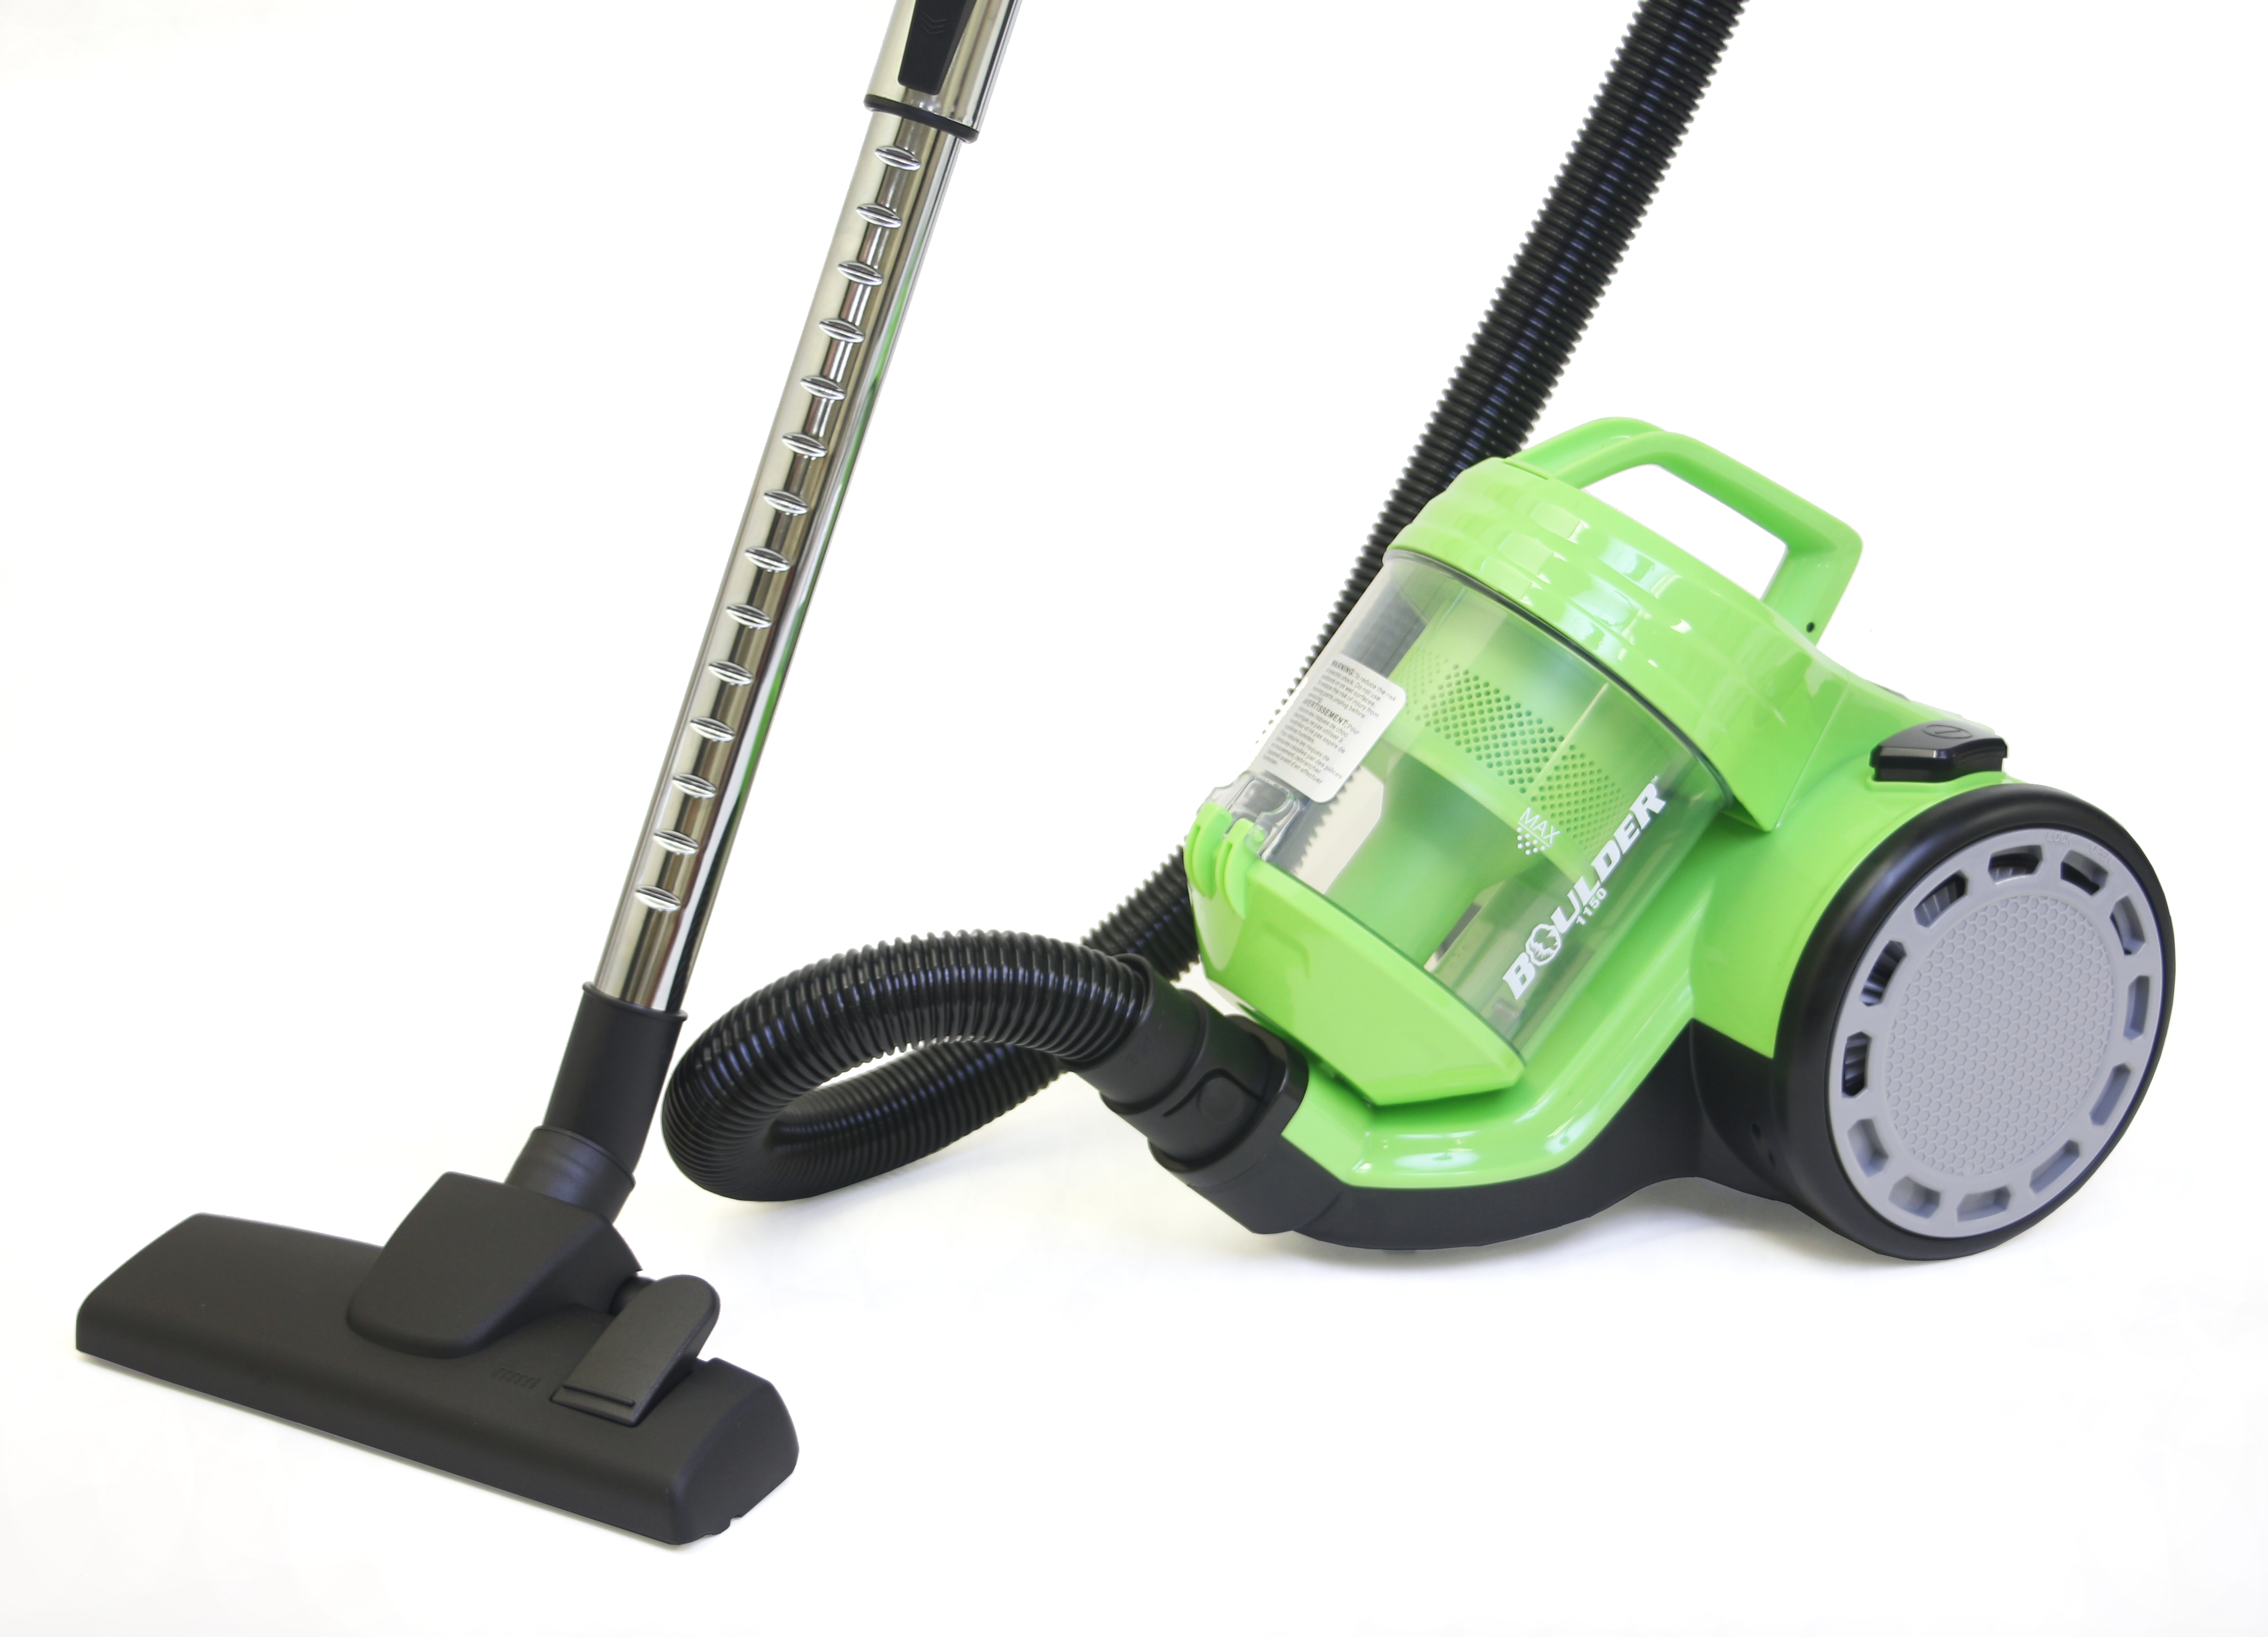 Sofa Vacuum Cleaner Brush Bagless Vacuum Cleaner 1000w 1 5l Green